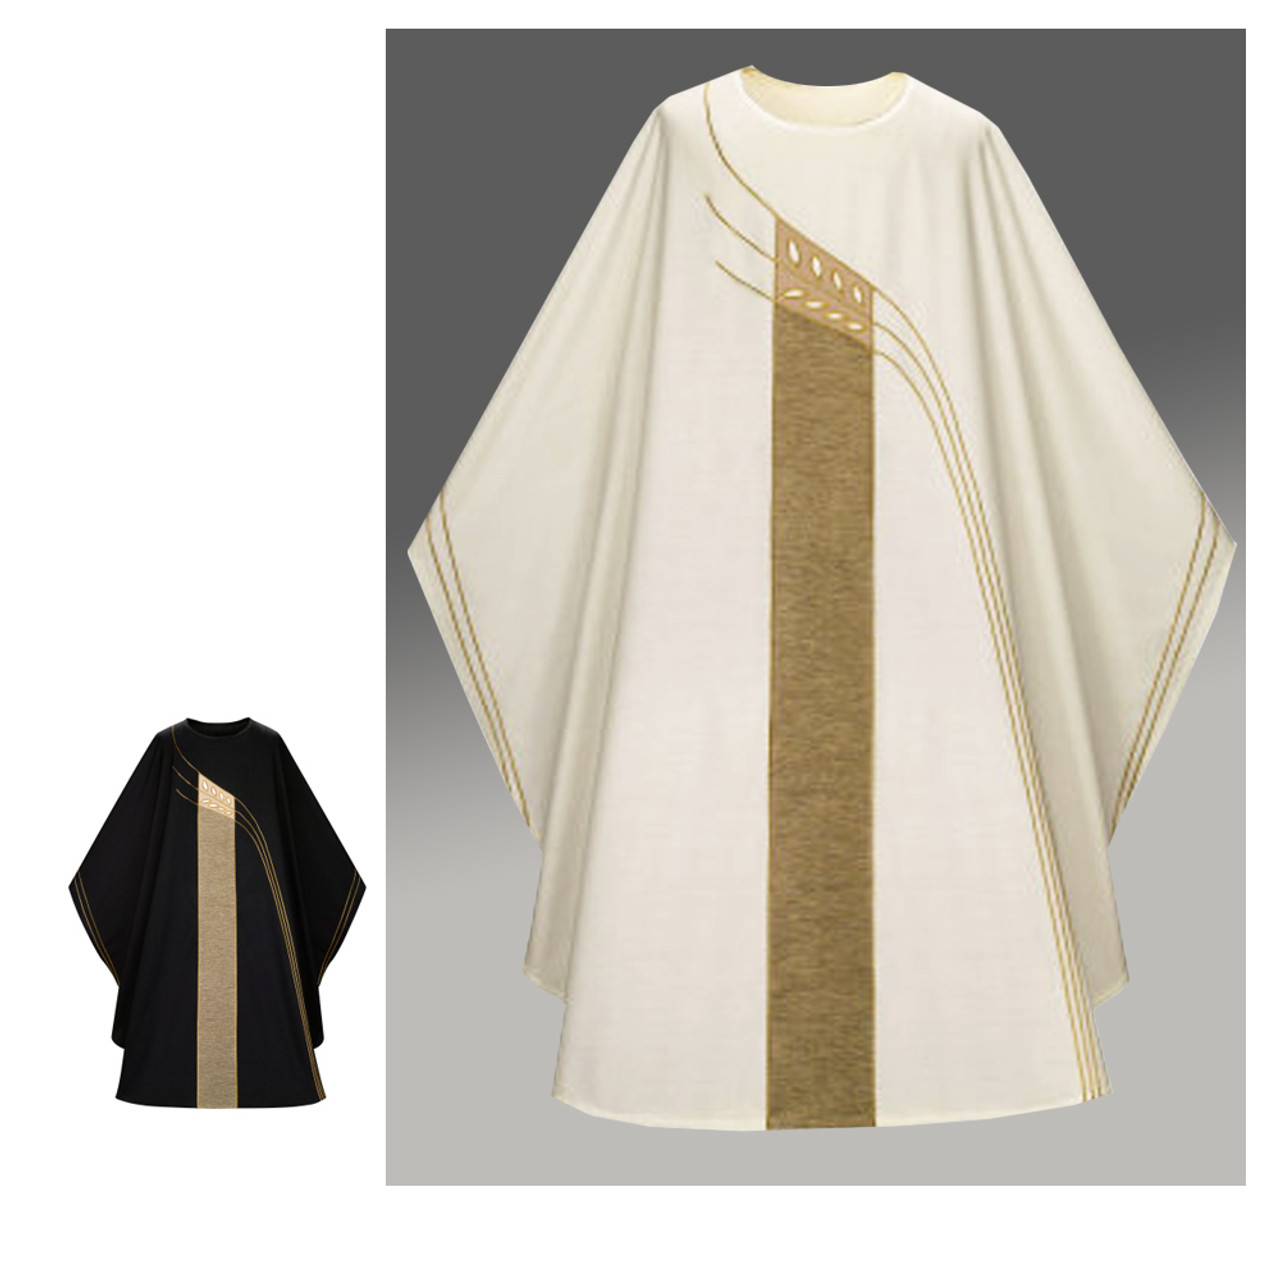 5121 White Chasuble in Dupion